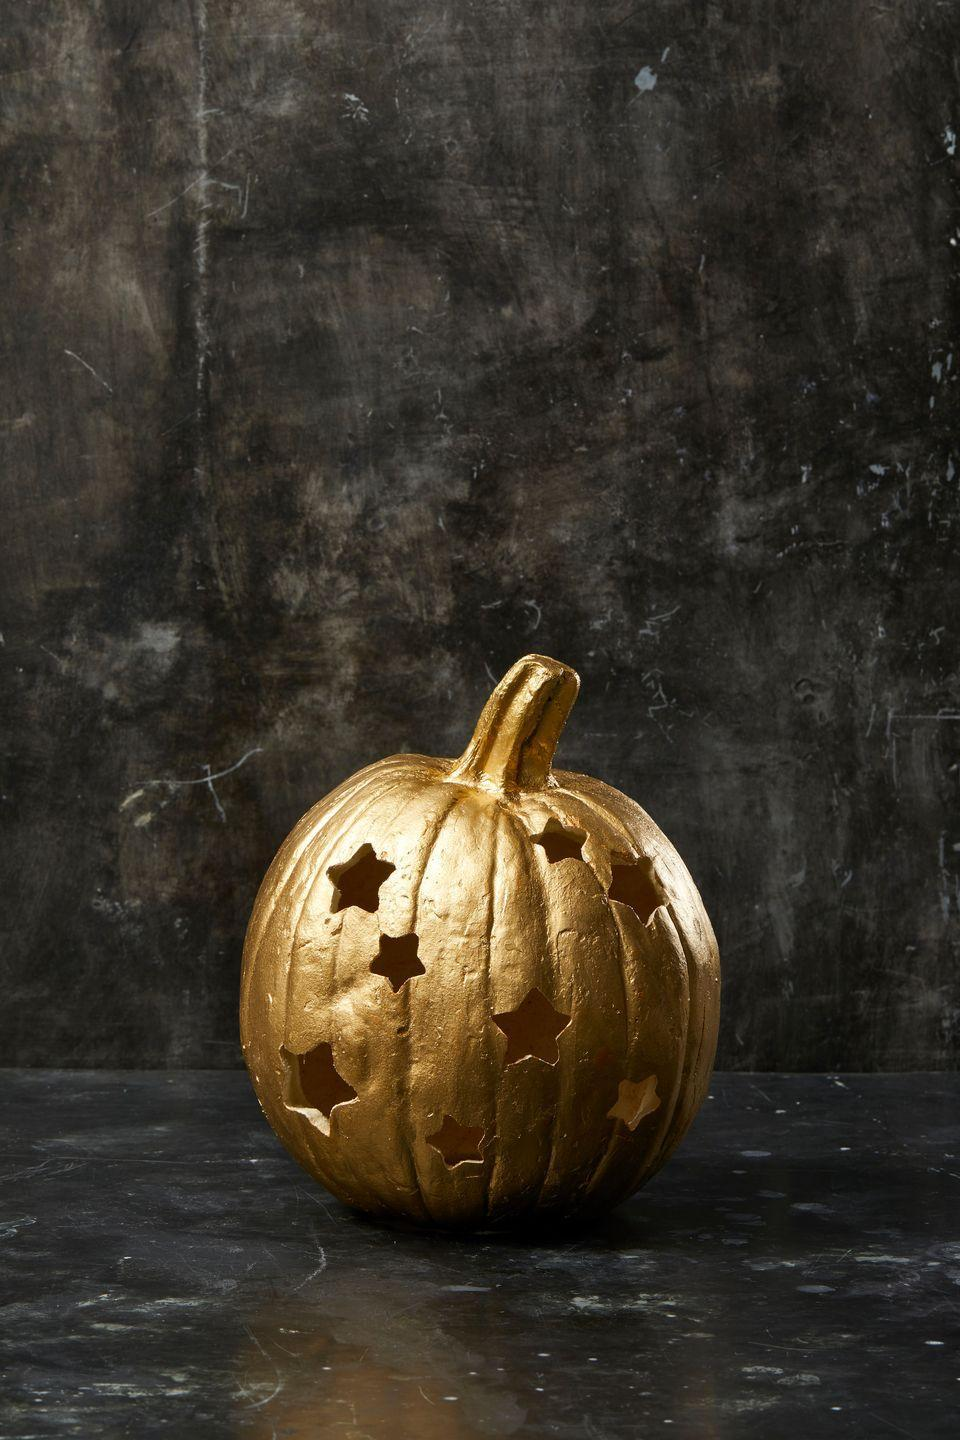 """<p>Even if you can't spot the stars in the sky, this carved pumpkin will give your front stoop a similar starry effect. First, paint the pumpkin the color of your choice and let it fully dry. Then, using a rubber mallet (or a hammer covered with a dishcloth), gently hammer a star-shaped cookie cutter into a real or faux pumpkin until it pushes completely through. Repeat all over the pumpkin until it achieves your desired look. </p><p><a class=""""link rapid-noclick-resp"""" href=""""https://www.amazon.com/Ann-Clark-Cookie-Cutters-Cutter/dp/B00KJ8HLRS?tag=syn-yahoo-20&ascsubtag=%5Bartid%7C10055.g.238%5Bsrc%7Cyahoo-us"""" rel=""""nofollow noopener"""" target=""""_blank"""" data-ylk=""""slk:SHOP COOKIE CUTTERS"""">SHOP COOKIE CUTTERS</a></p>"""